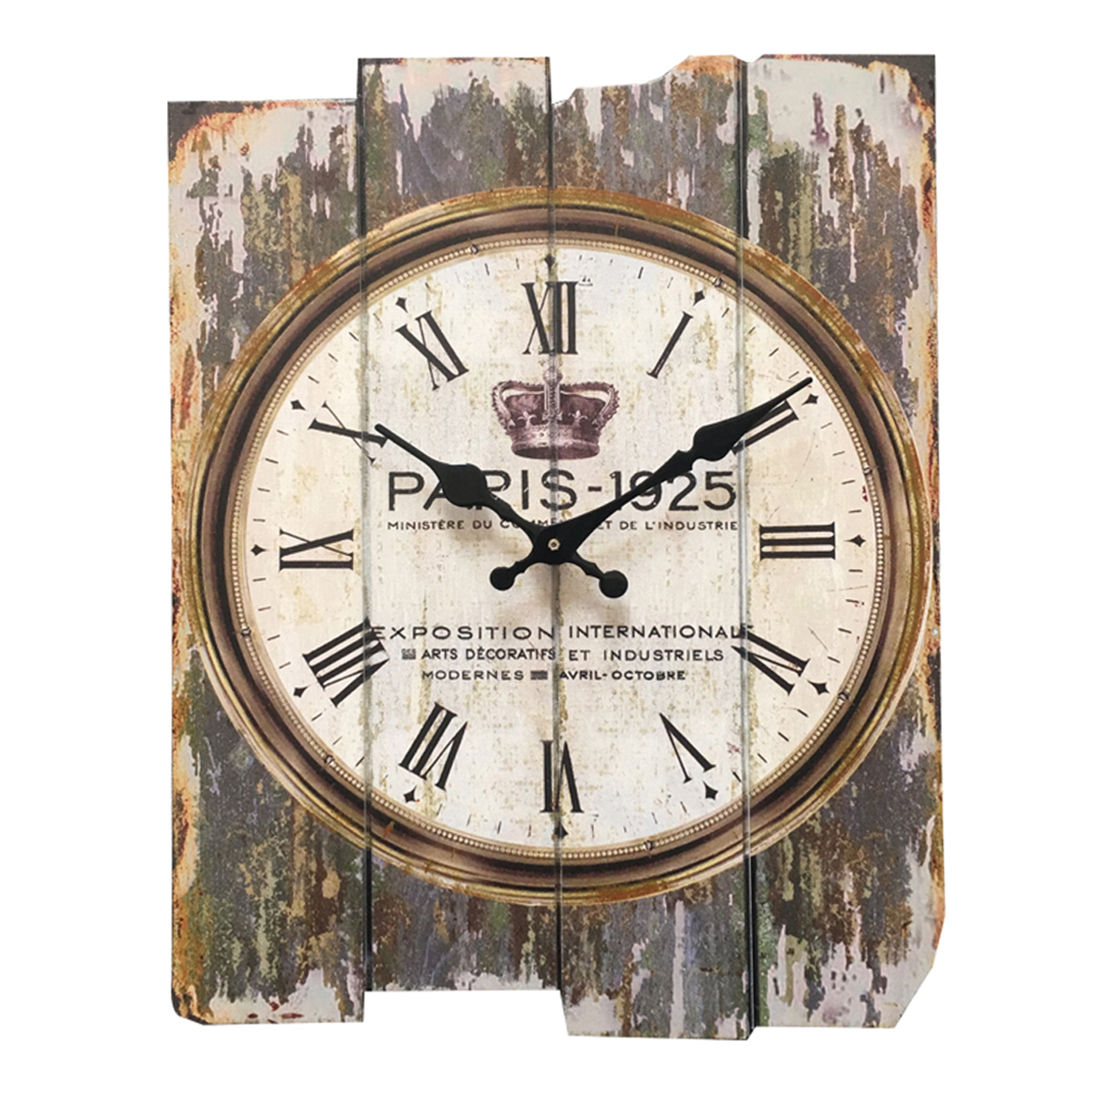 30*40Cm England Wall Clock Wood Vintage Retro Style Square Mute Wall Hanging Clocks Watch Home Decor 2018